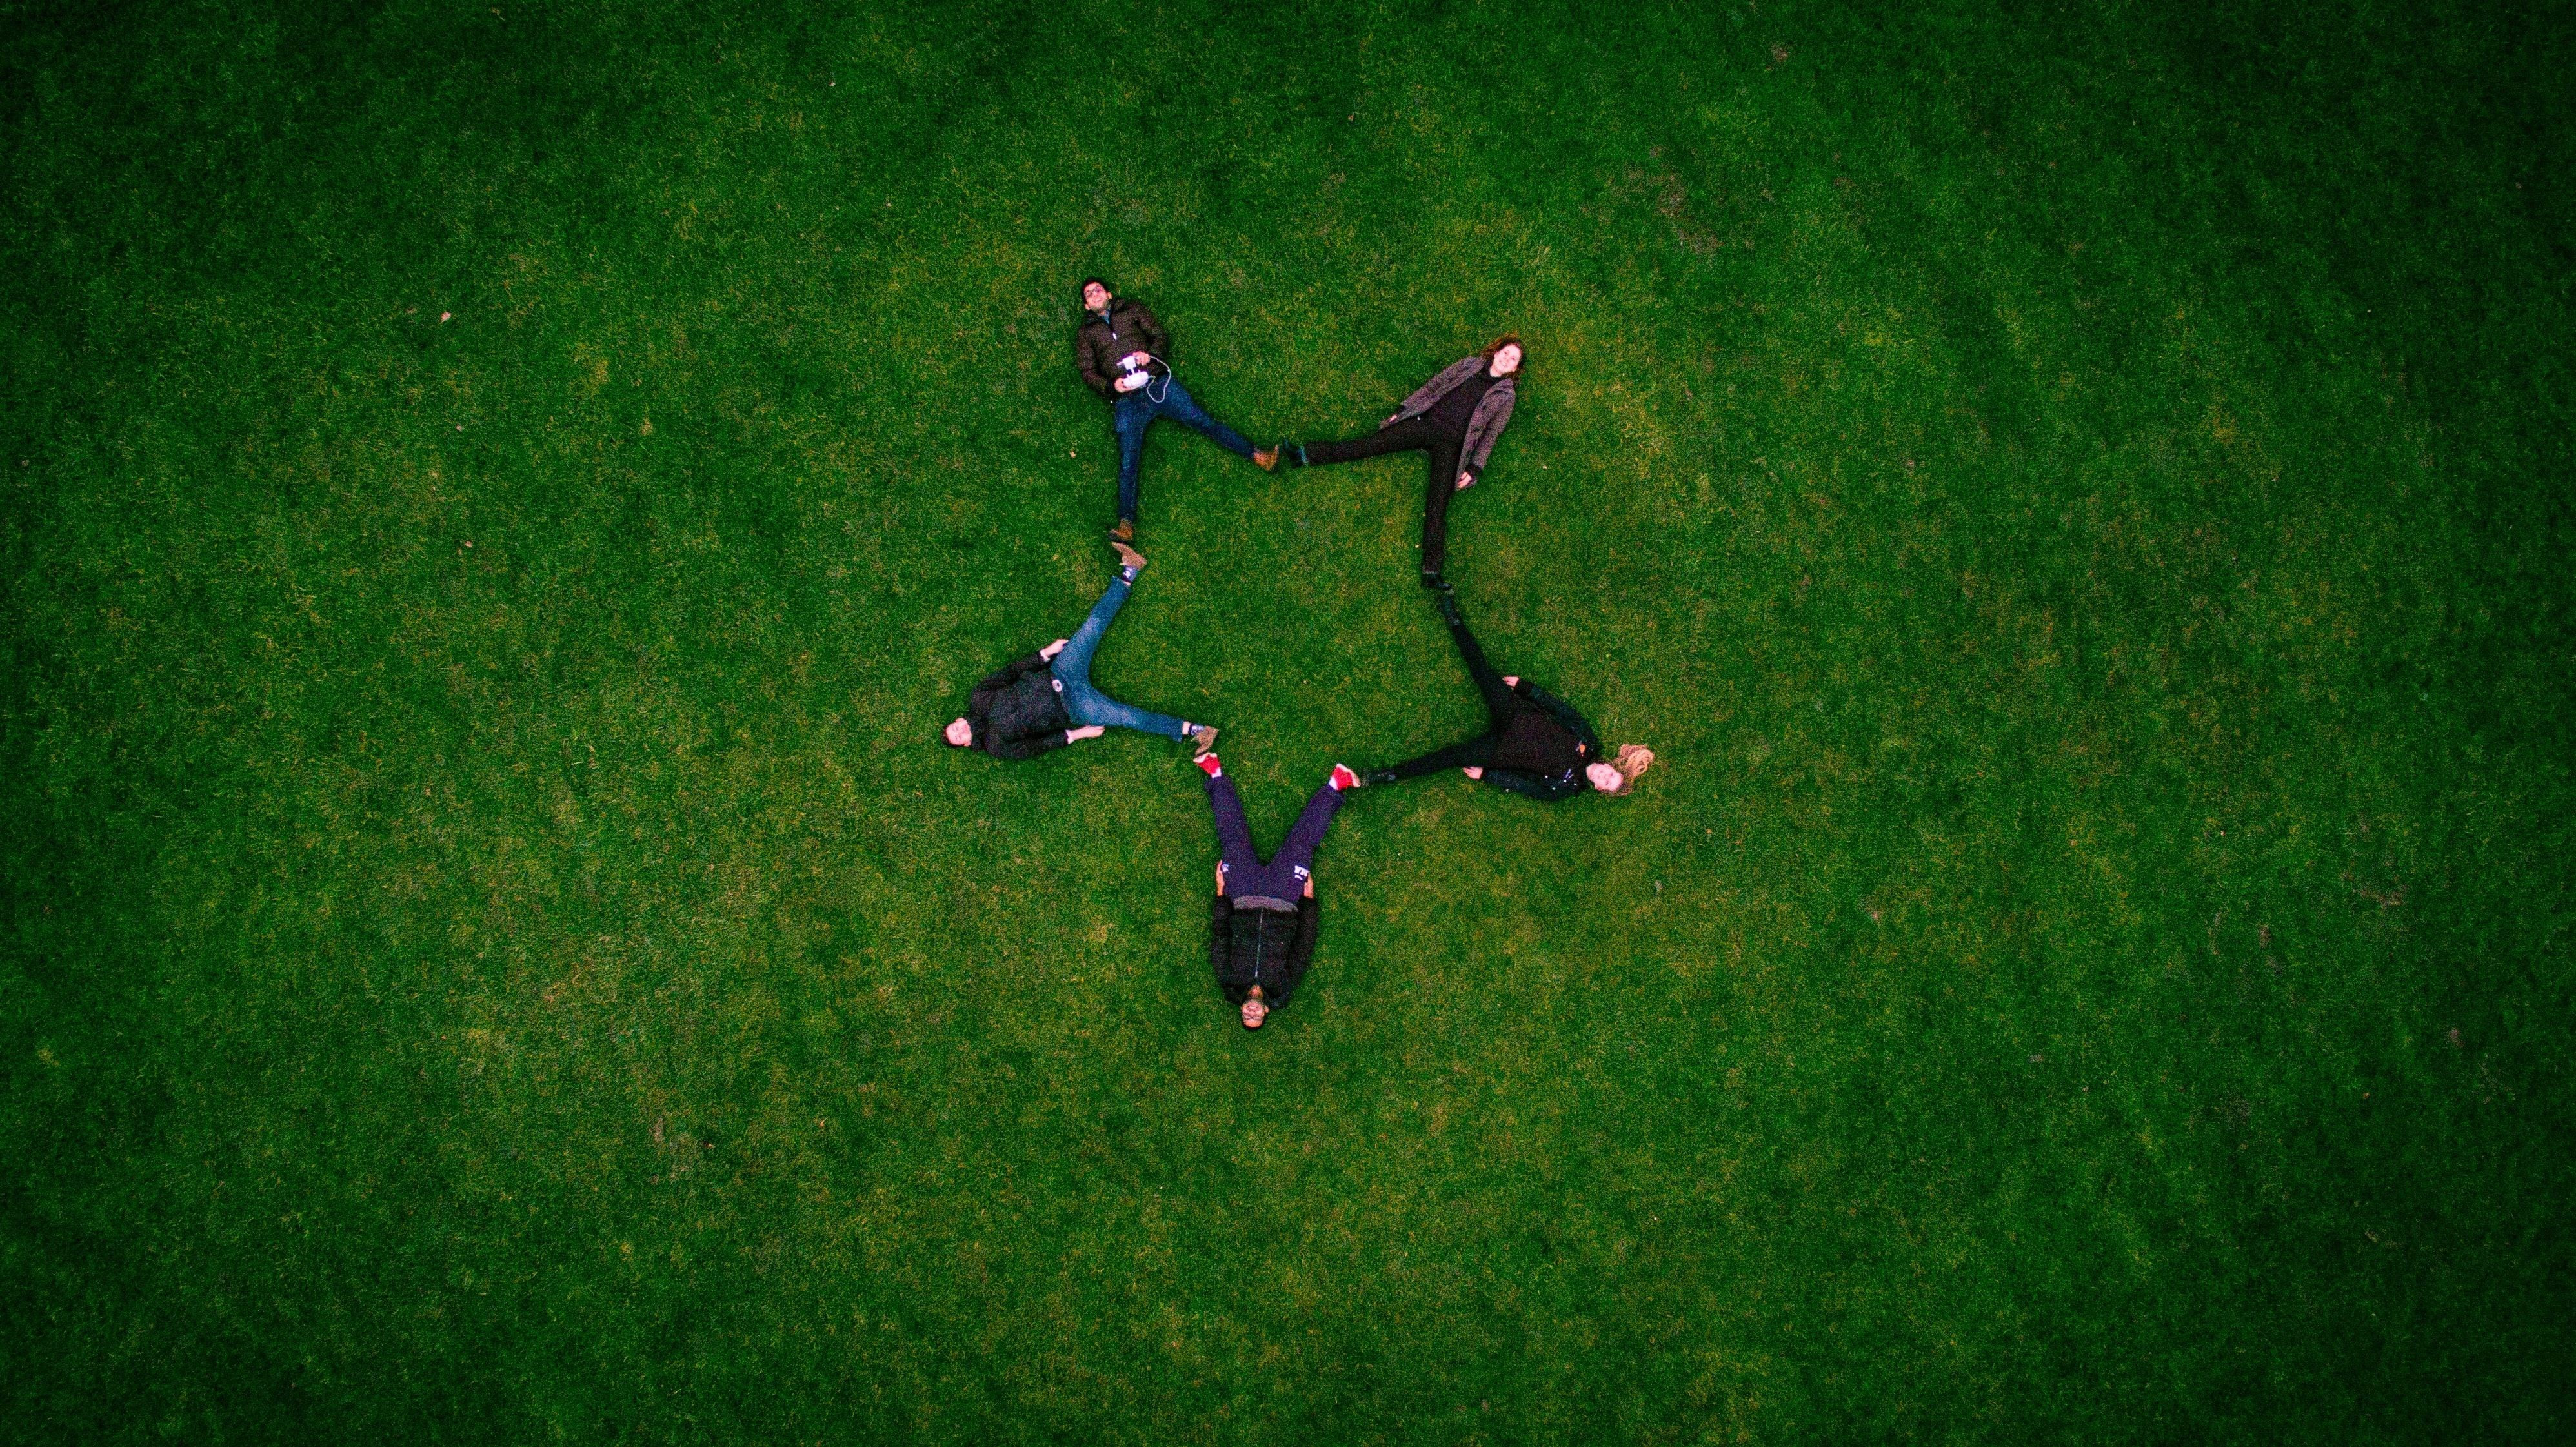 five people laying on grass field making star sign